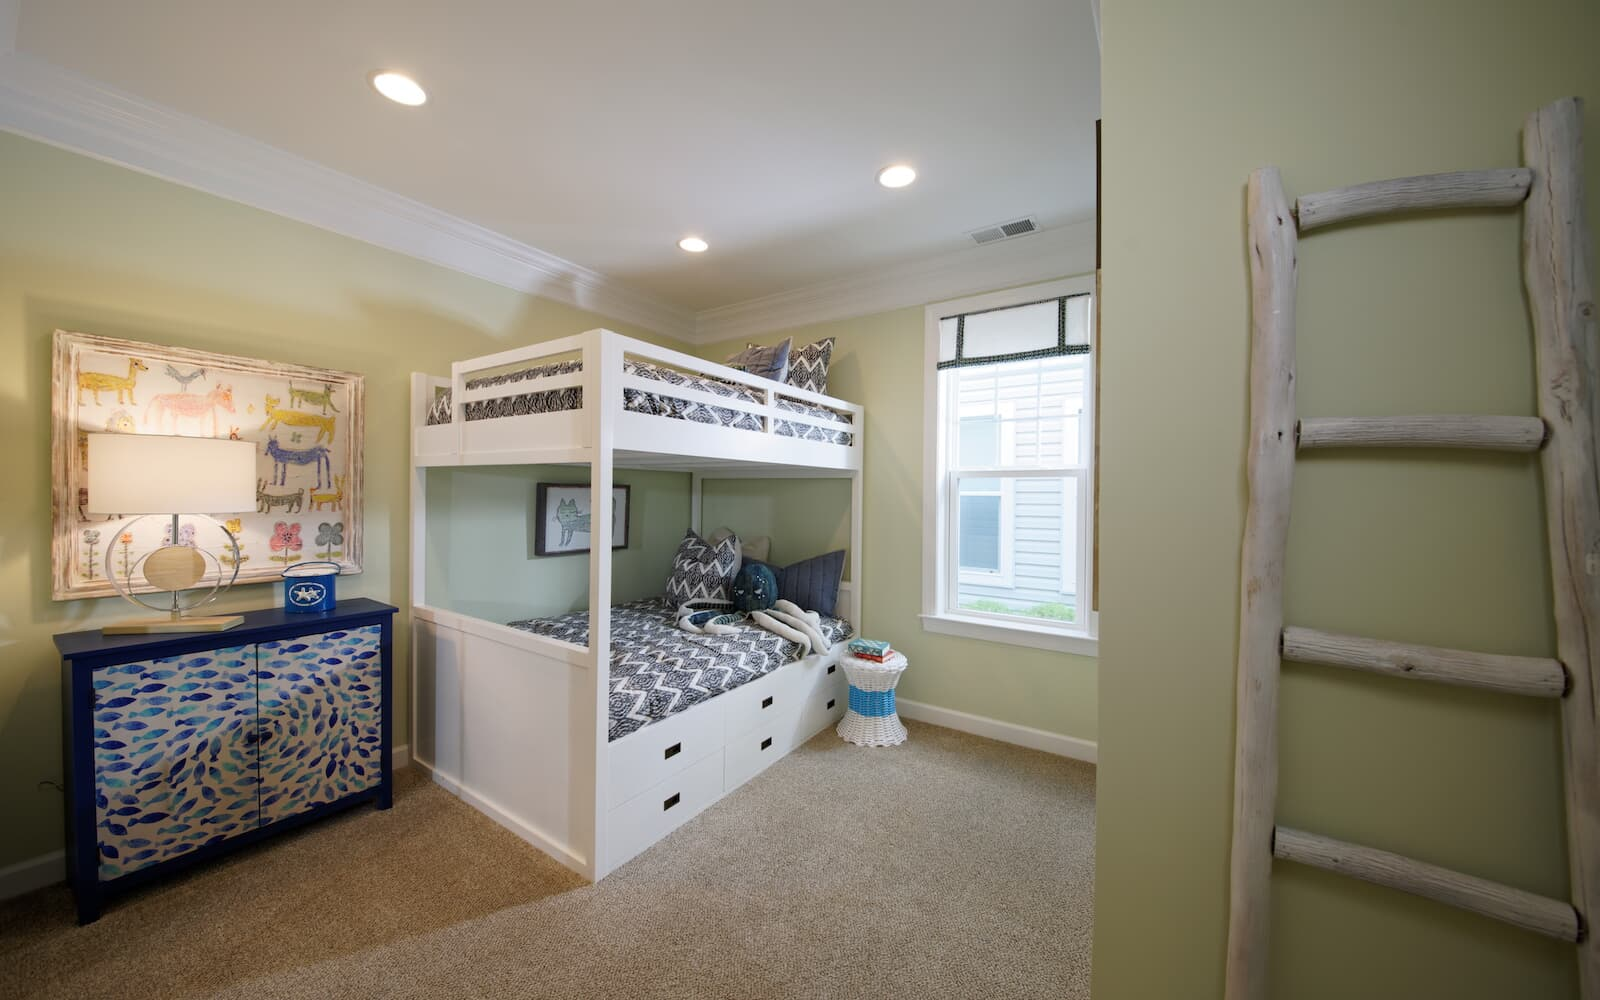 A secondary bedroom at the Picasso home in Heritage Shores Bridgeville DE